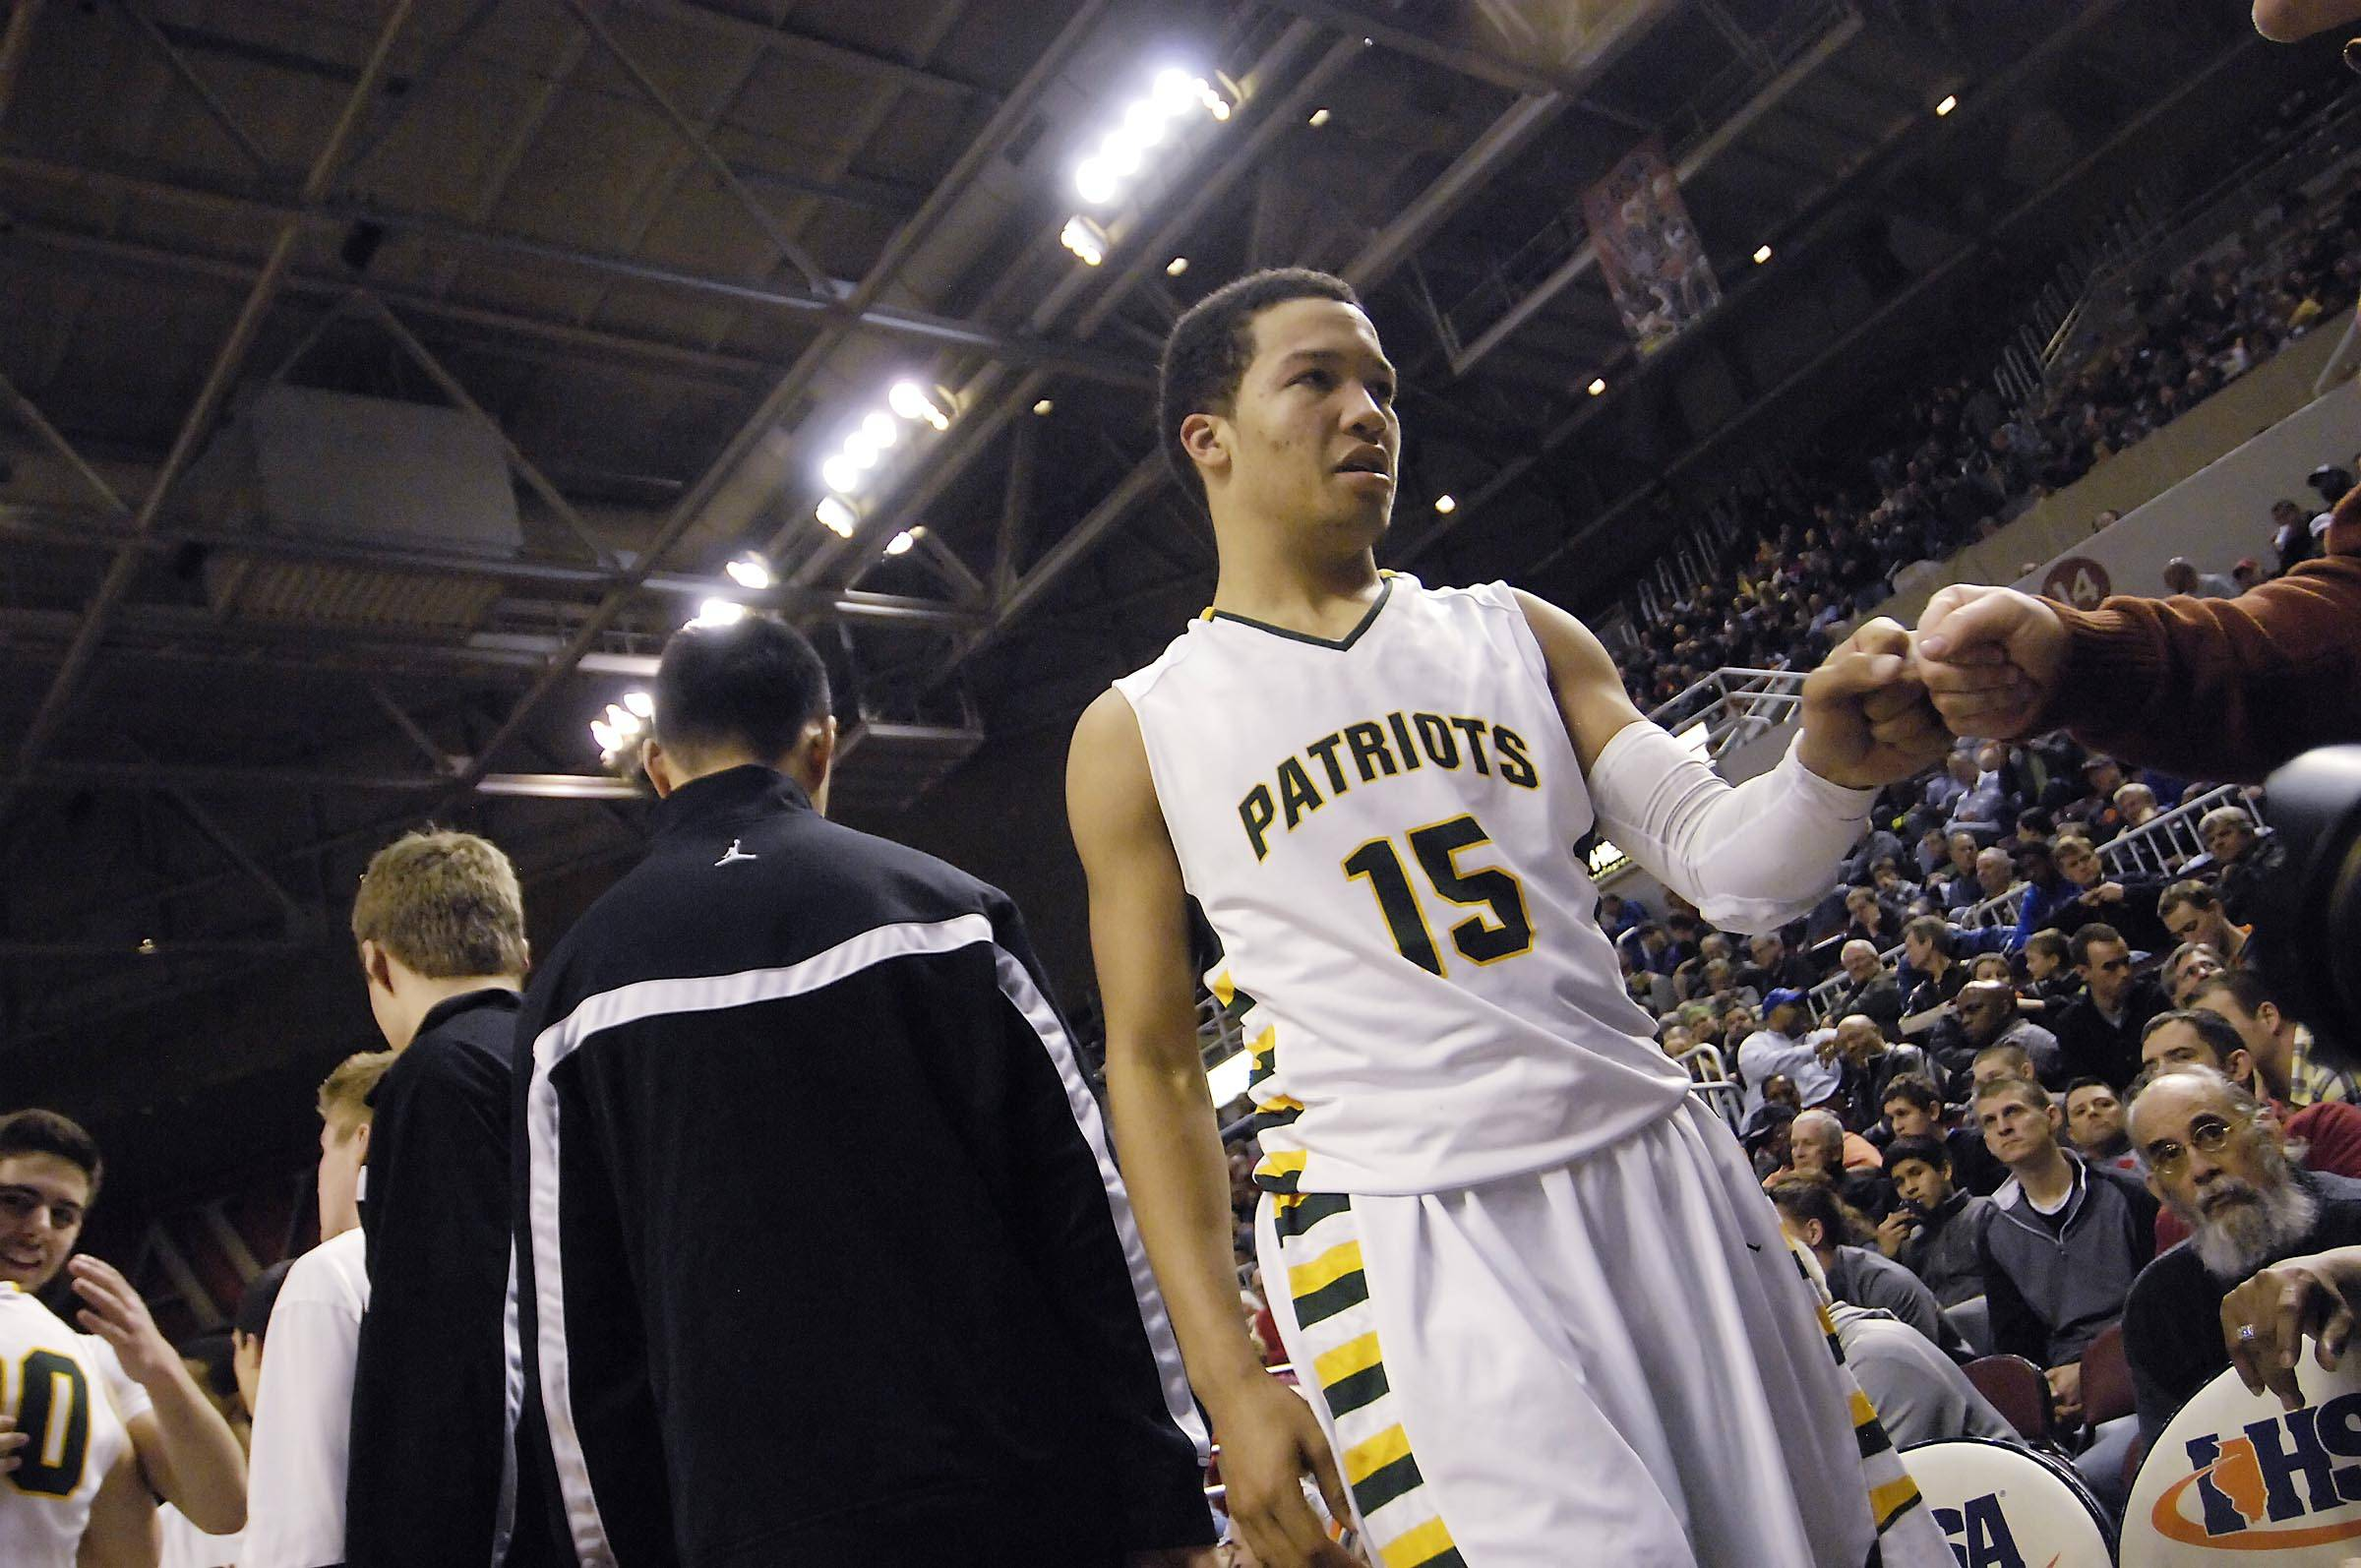 Stevenson's Jalen Brunson comes off the court in the final seconds of the Patriots' 70-63 win over Edwardsville in the Class 4A third-place game at Carver Arena in Peoria on Saturday.